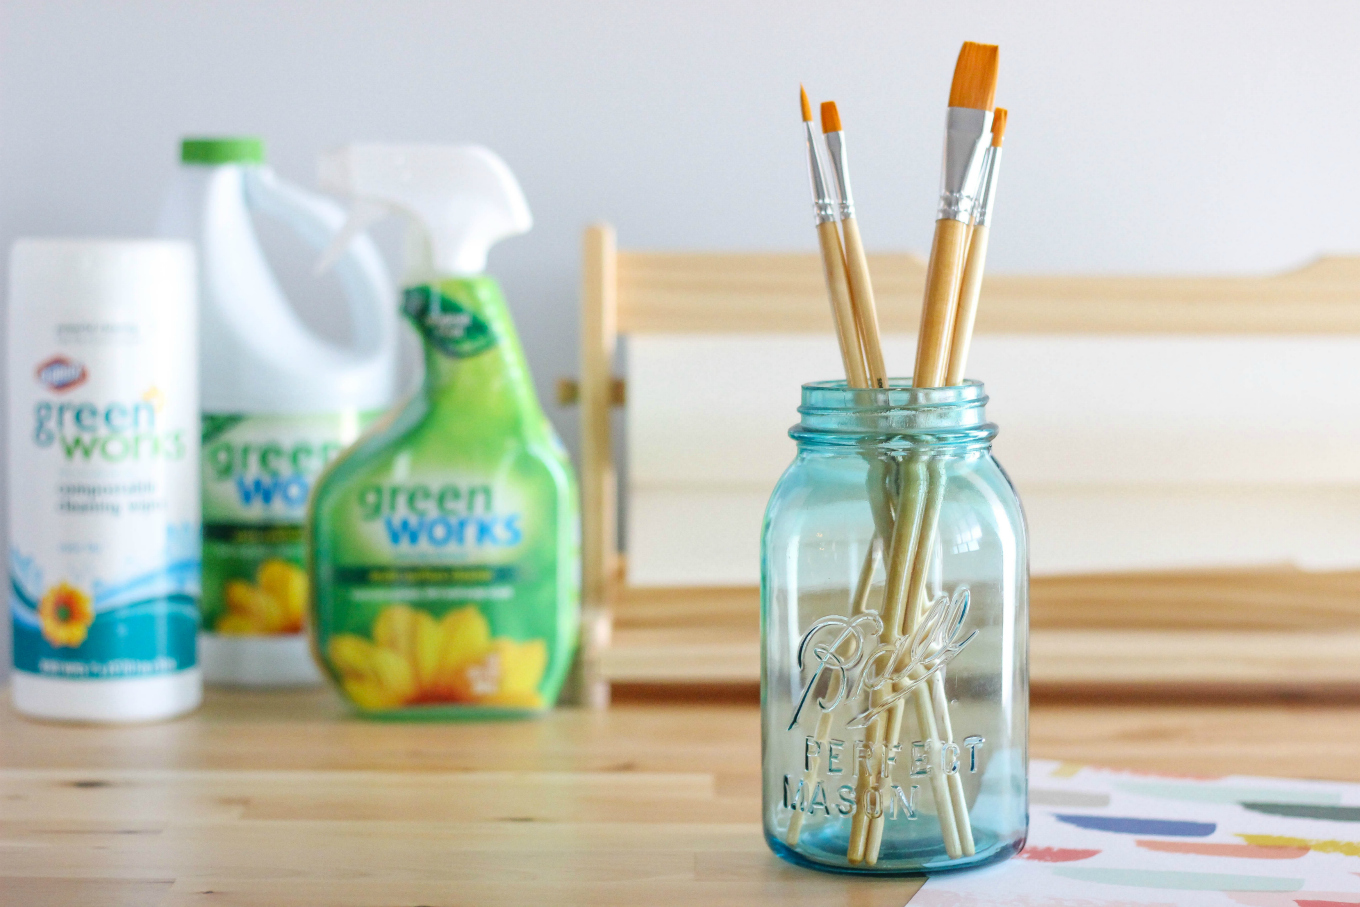 Today, we are sharing some of our favorite tips and why we love Keeping It Clean and Natural with Green Works®. These cleaners are naturally derived.